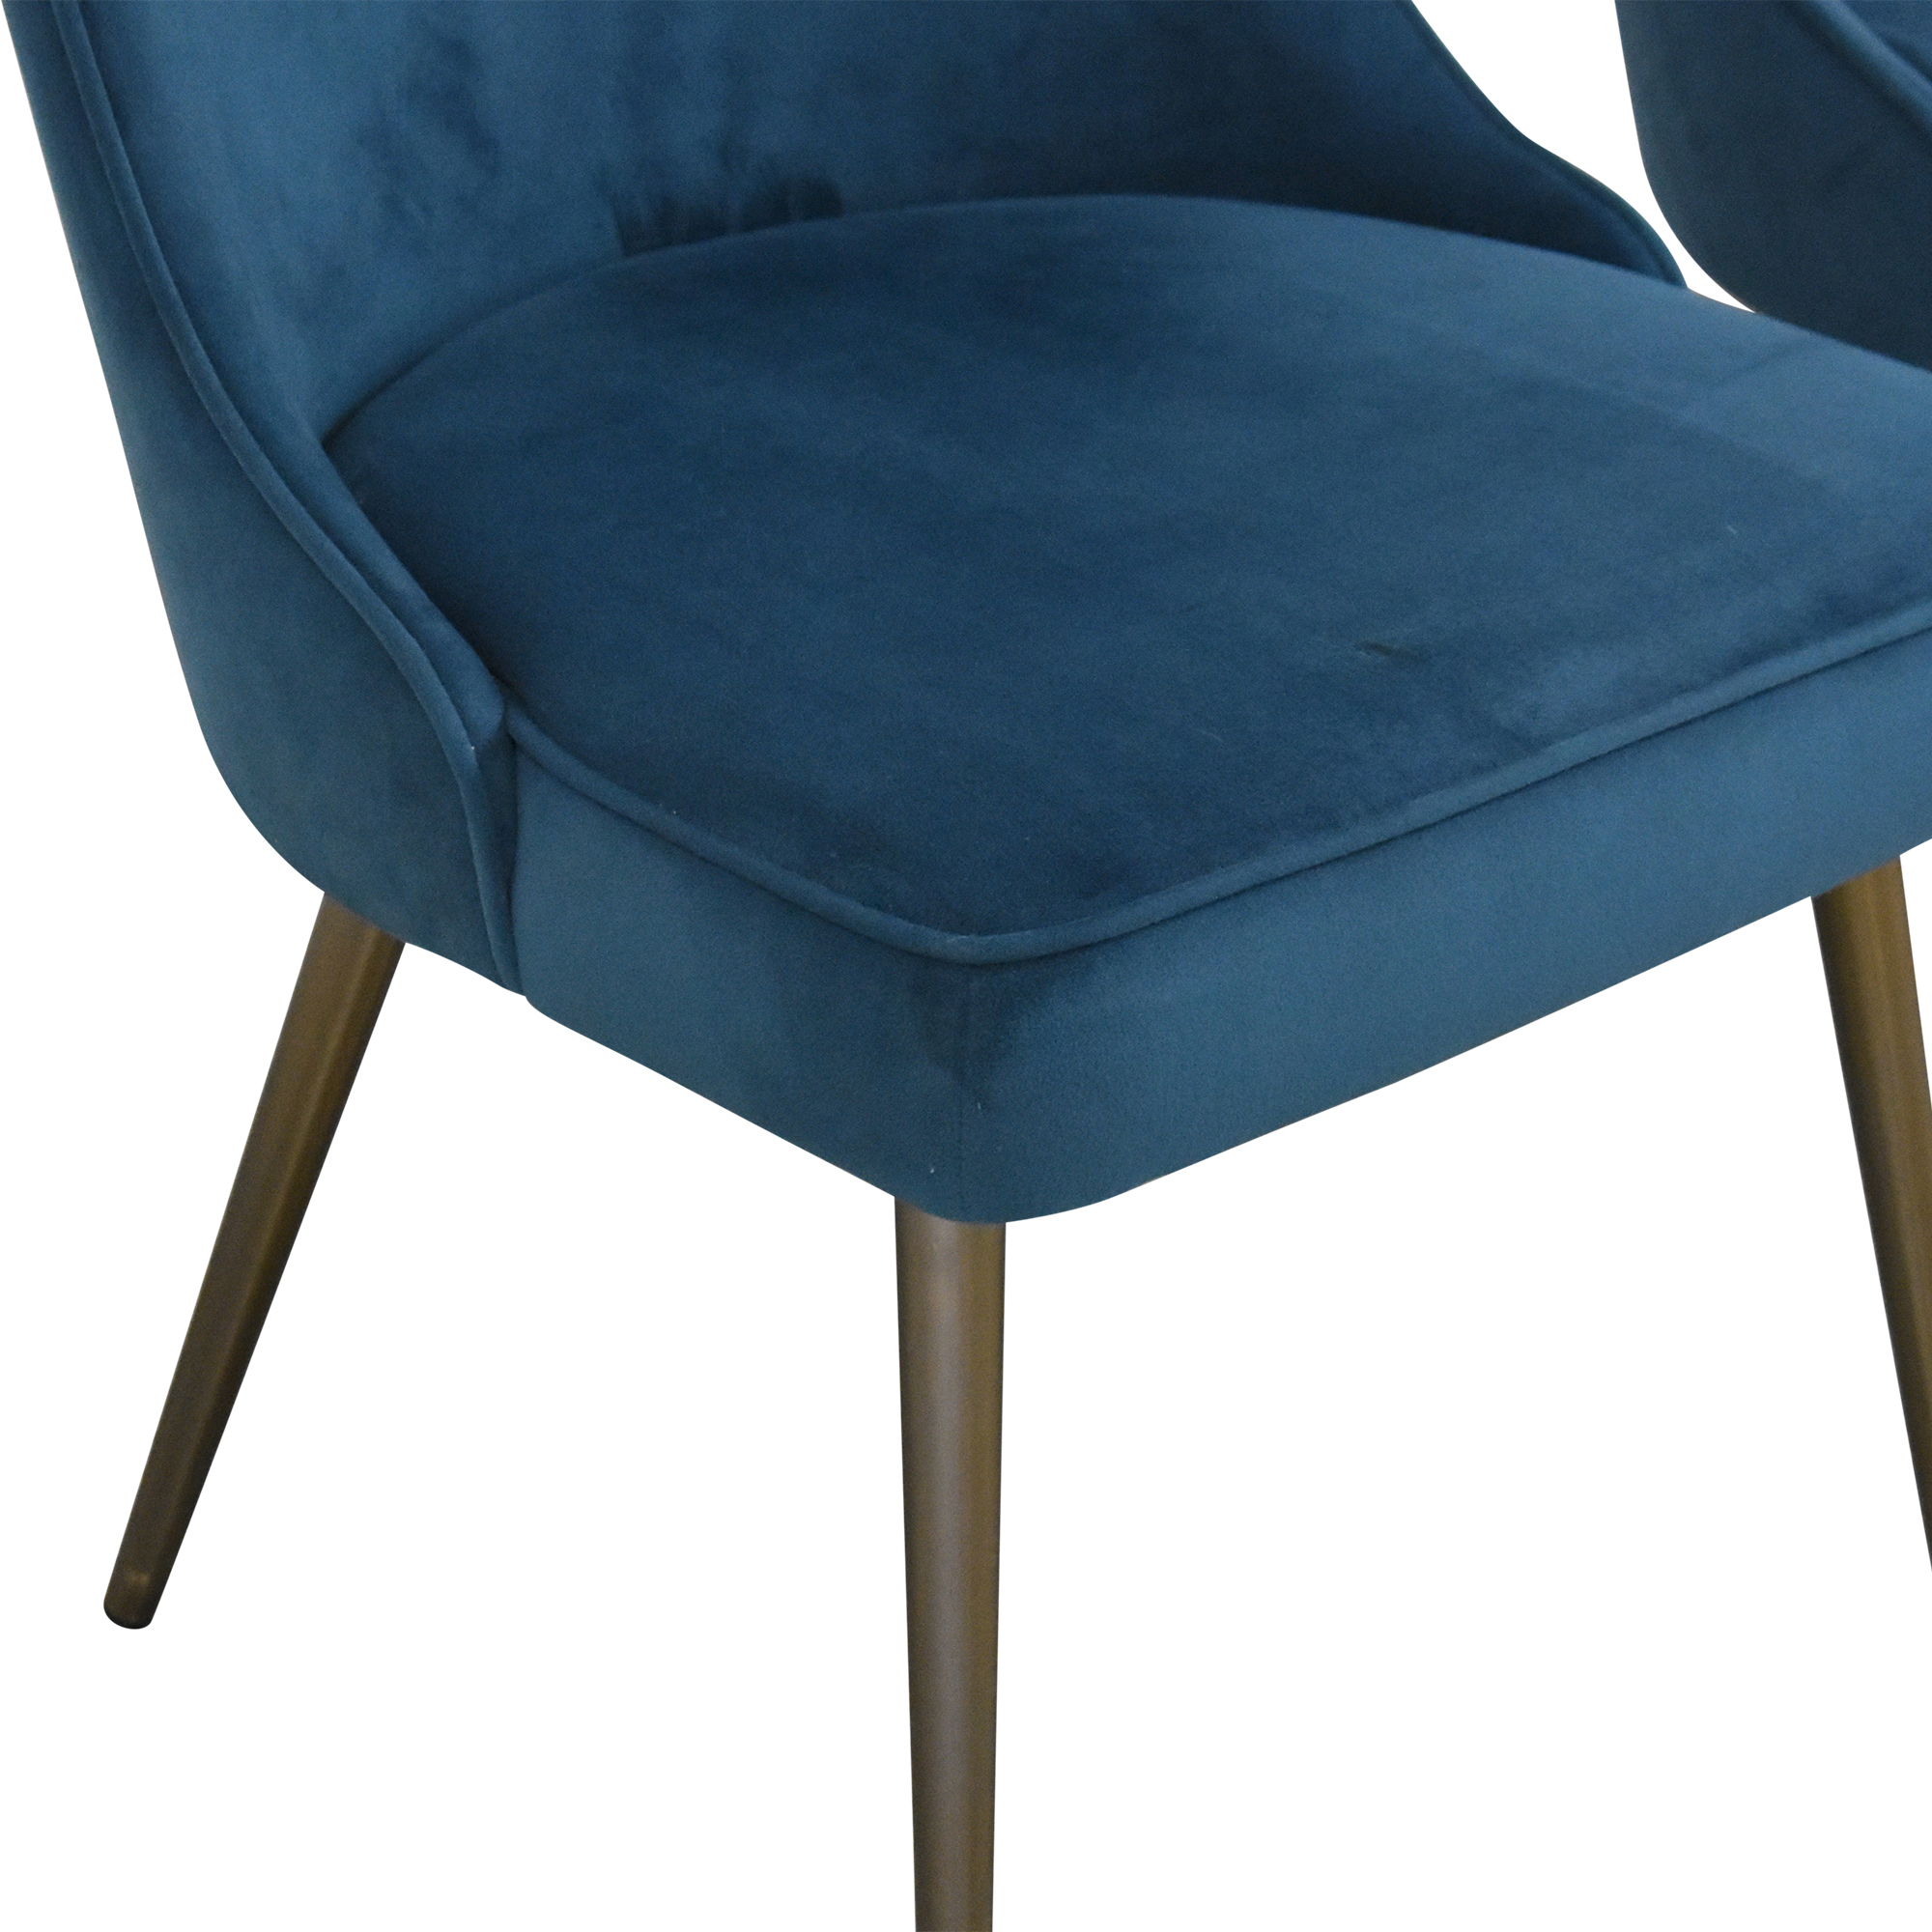 West Elm West Elm Mid Century Upholstered Dining Chairs Dining Chairs